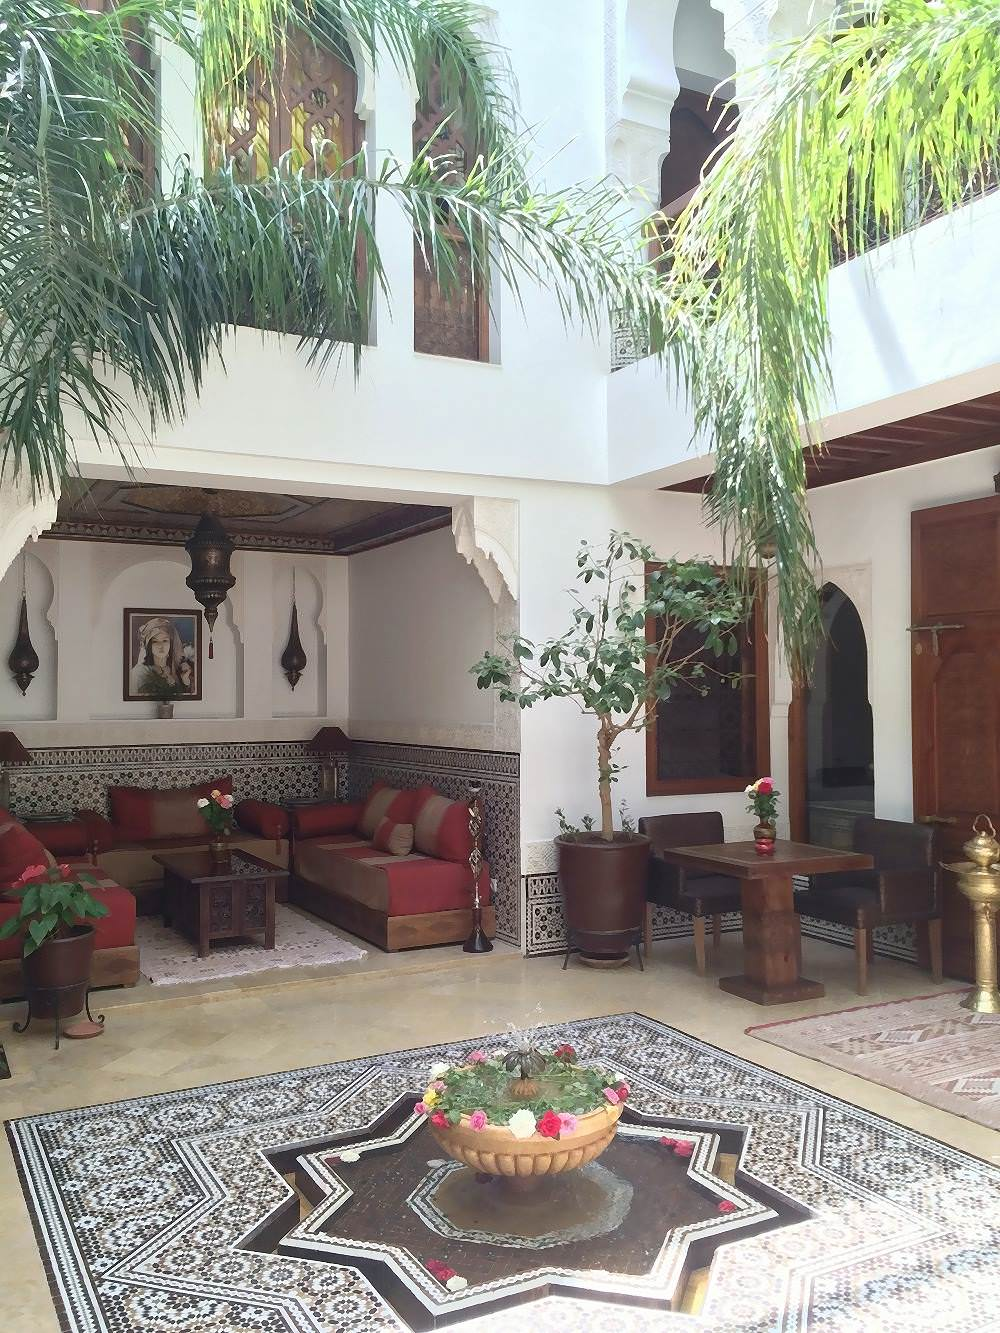 Riad Viva Luxury Hotel Riad In Marrakech Overlooking The Private